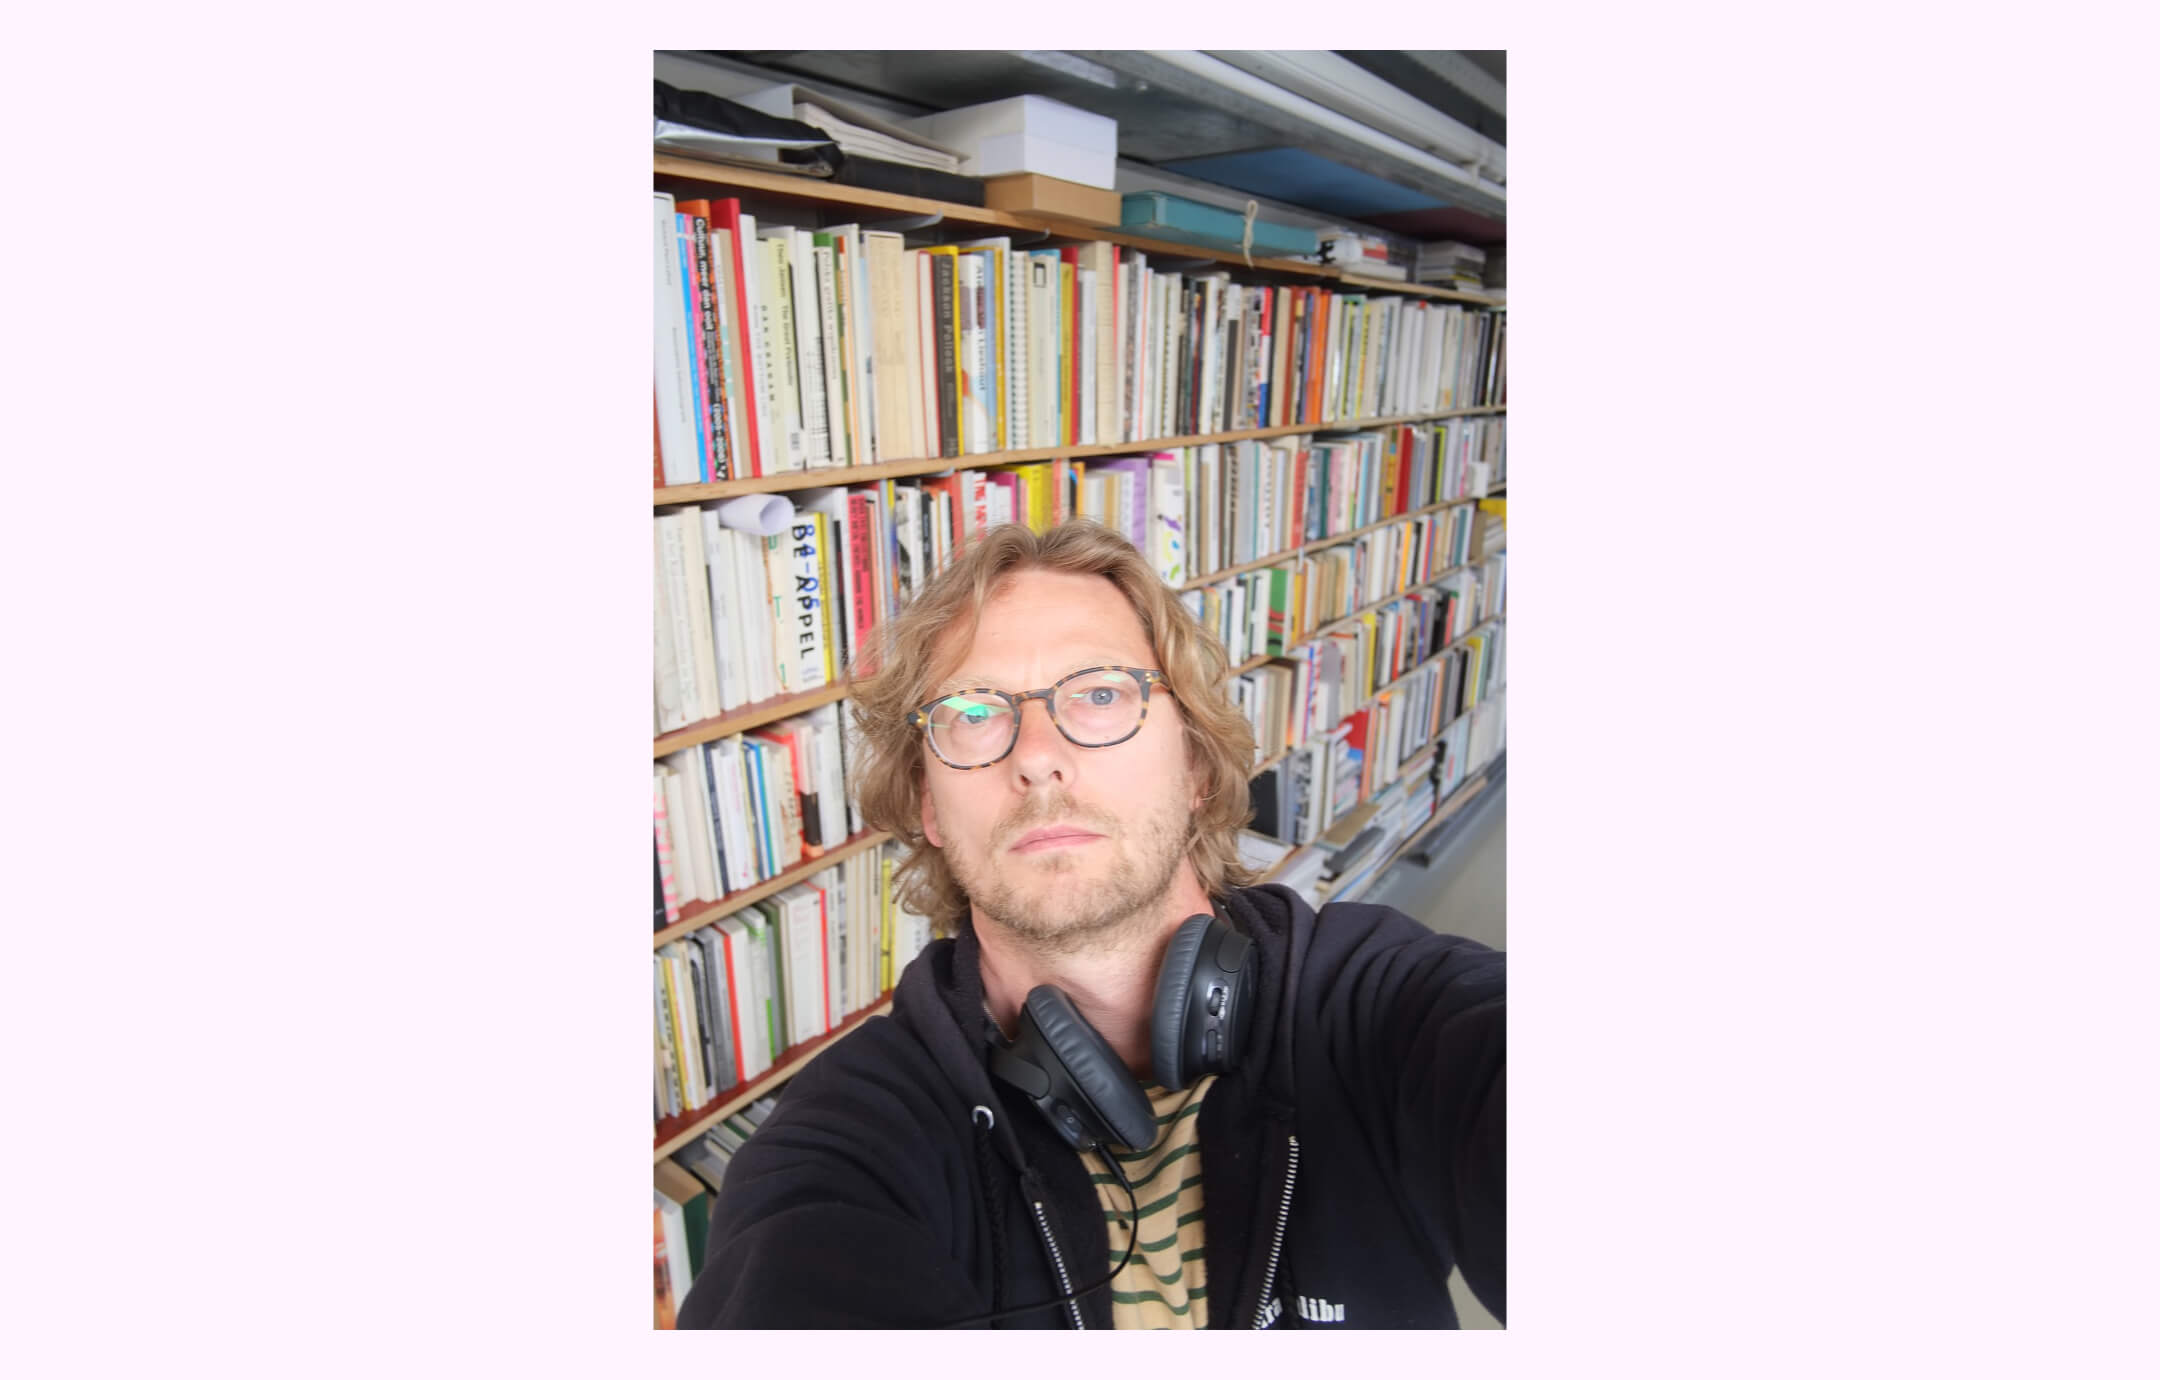 A self-portrait taken by Roger Willems in his Amsterdam studio, set on a pink background